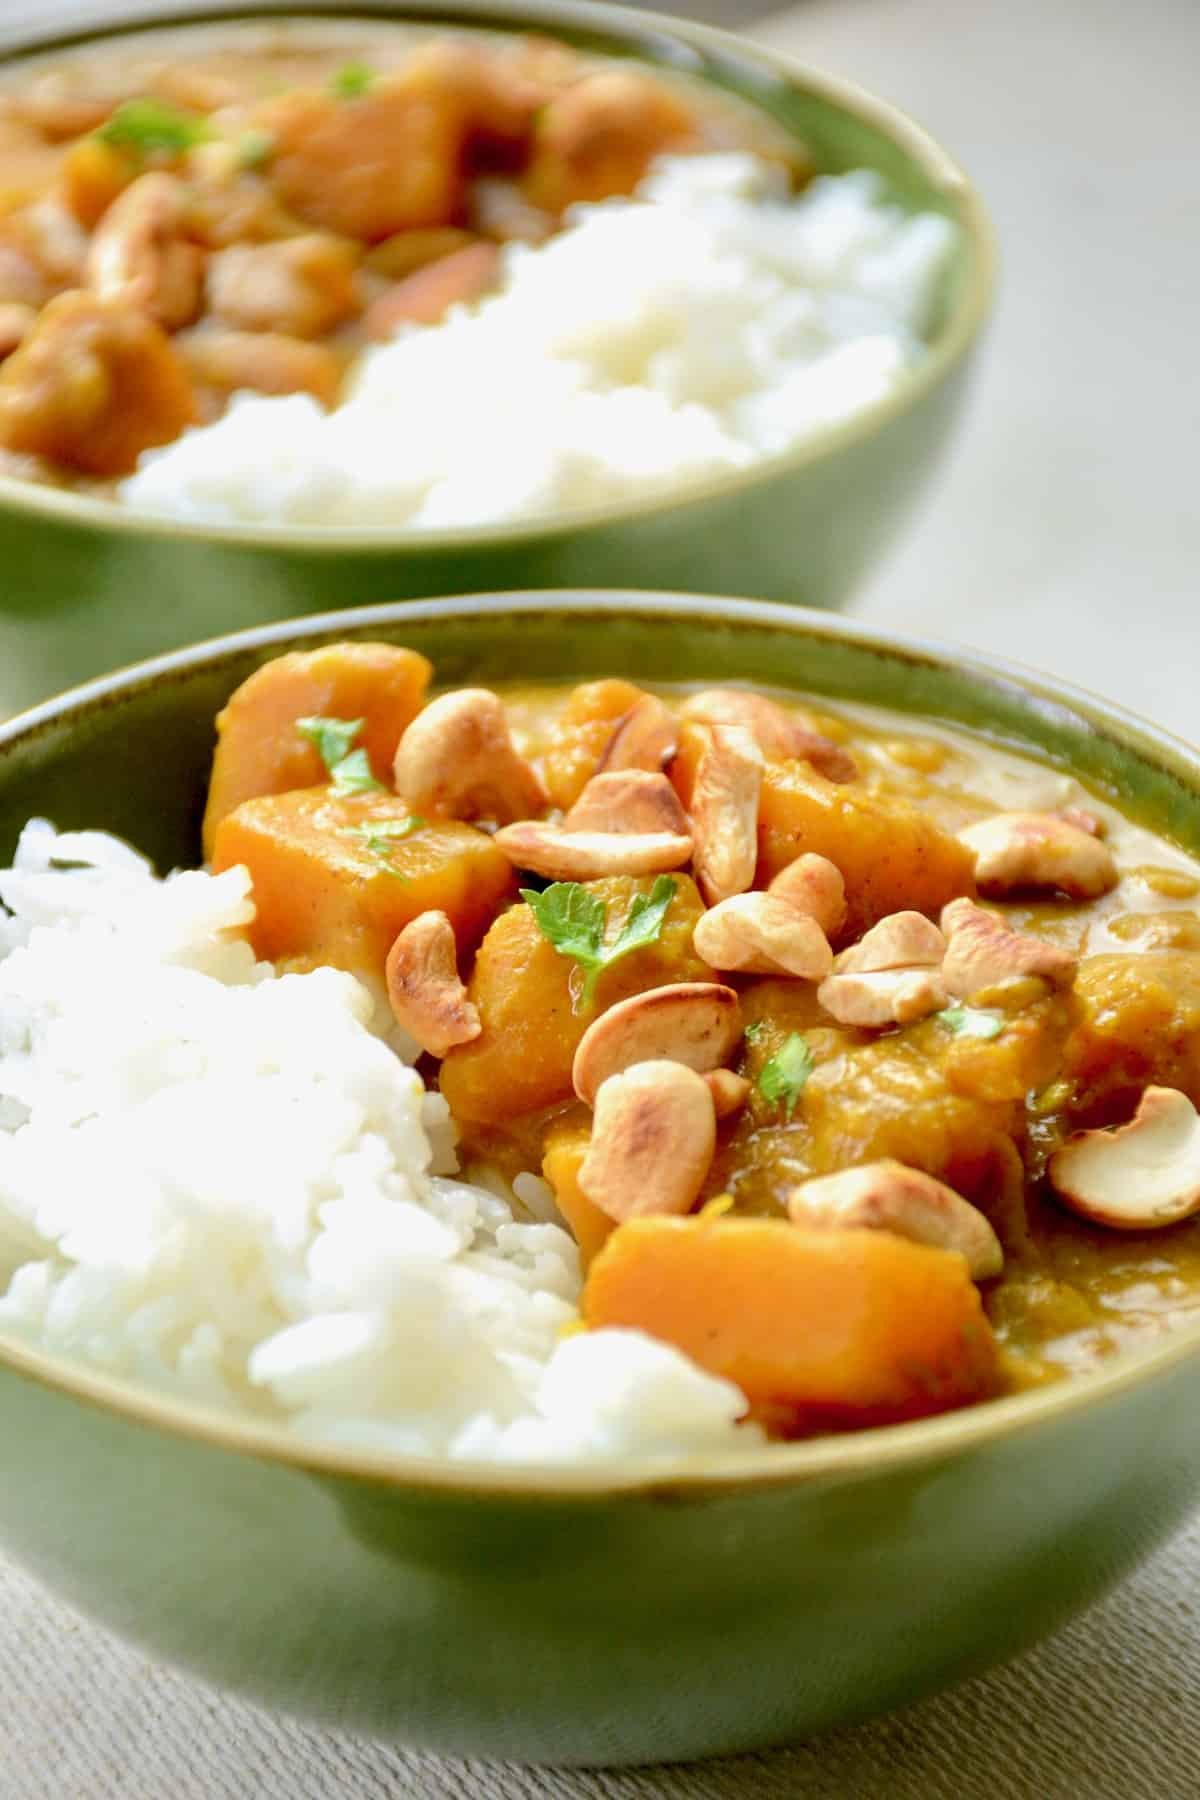 Two bowl of pumpkin curry with golden toasted cashews and sprinkling of herbs on top.